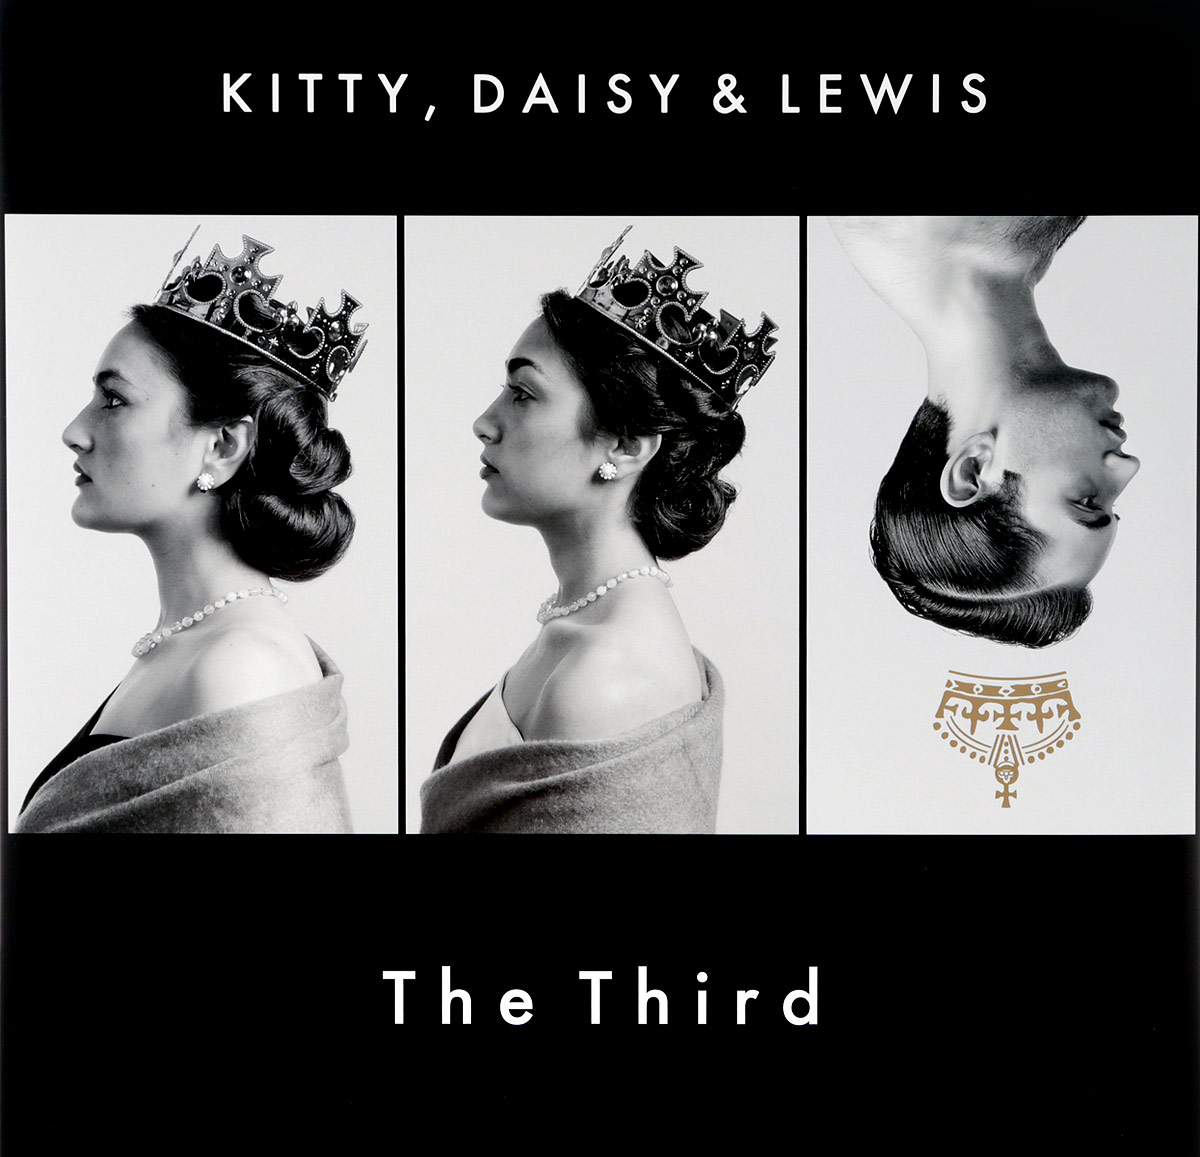 Kitty, Daisy & Lewis Kitty, Daisy & Lewis. The Third (LP) lewis handling birth trauma cases 1988 cumulati ve supplement pr only